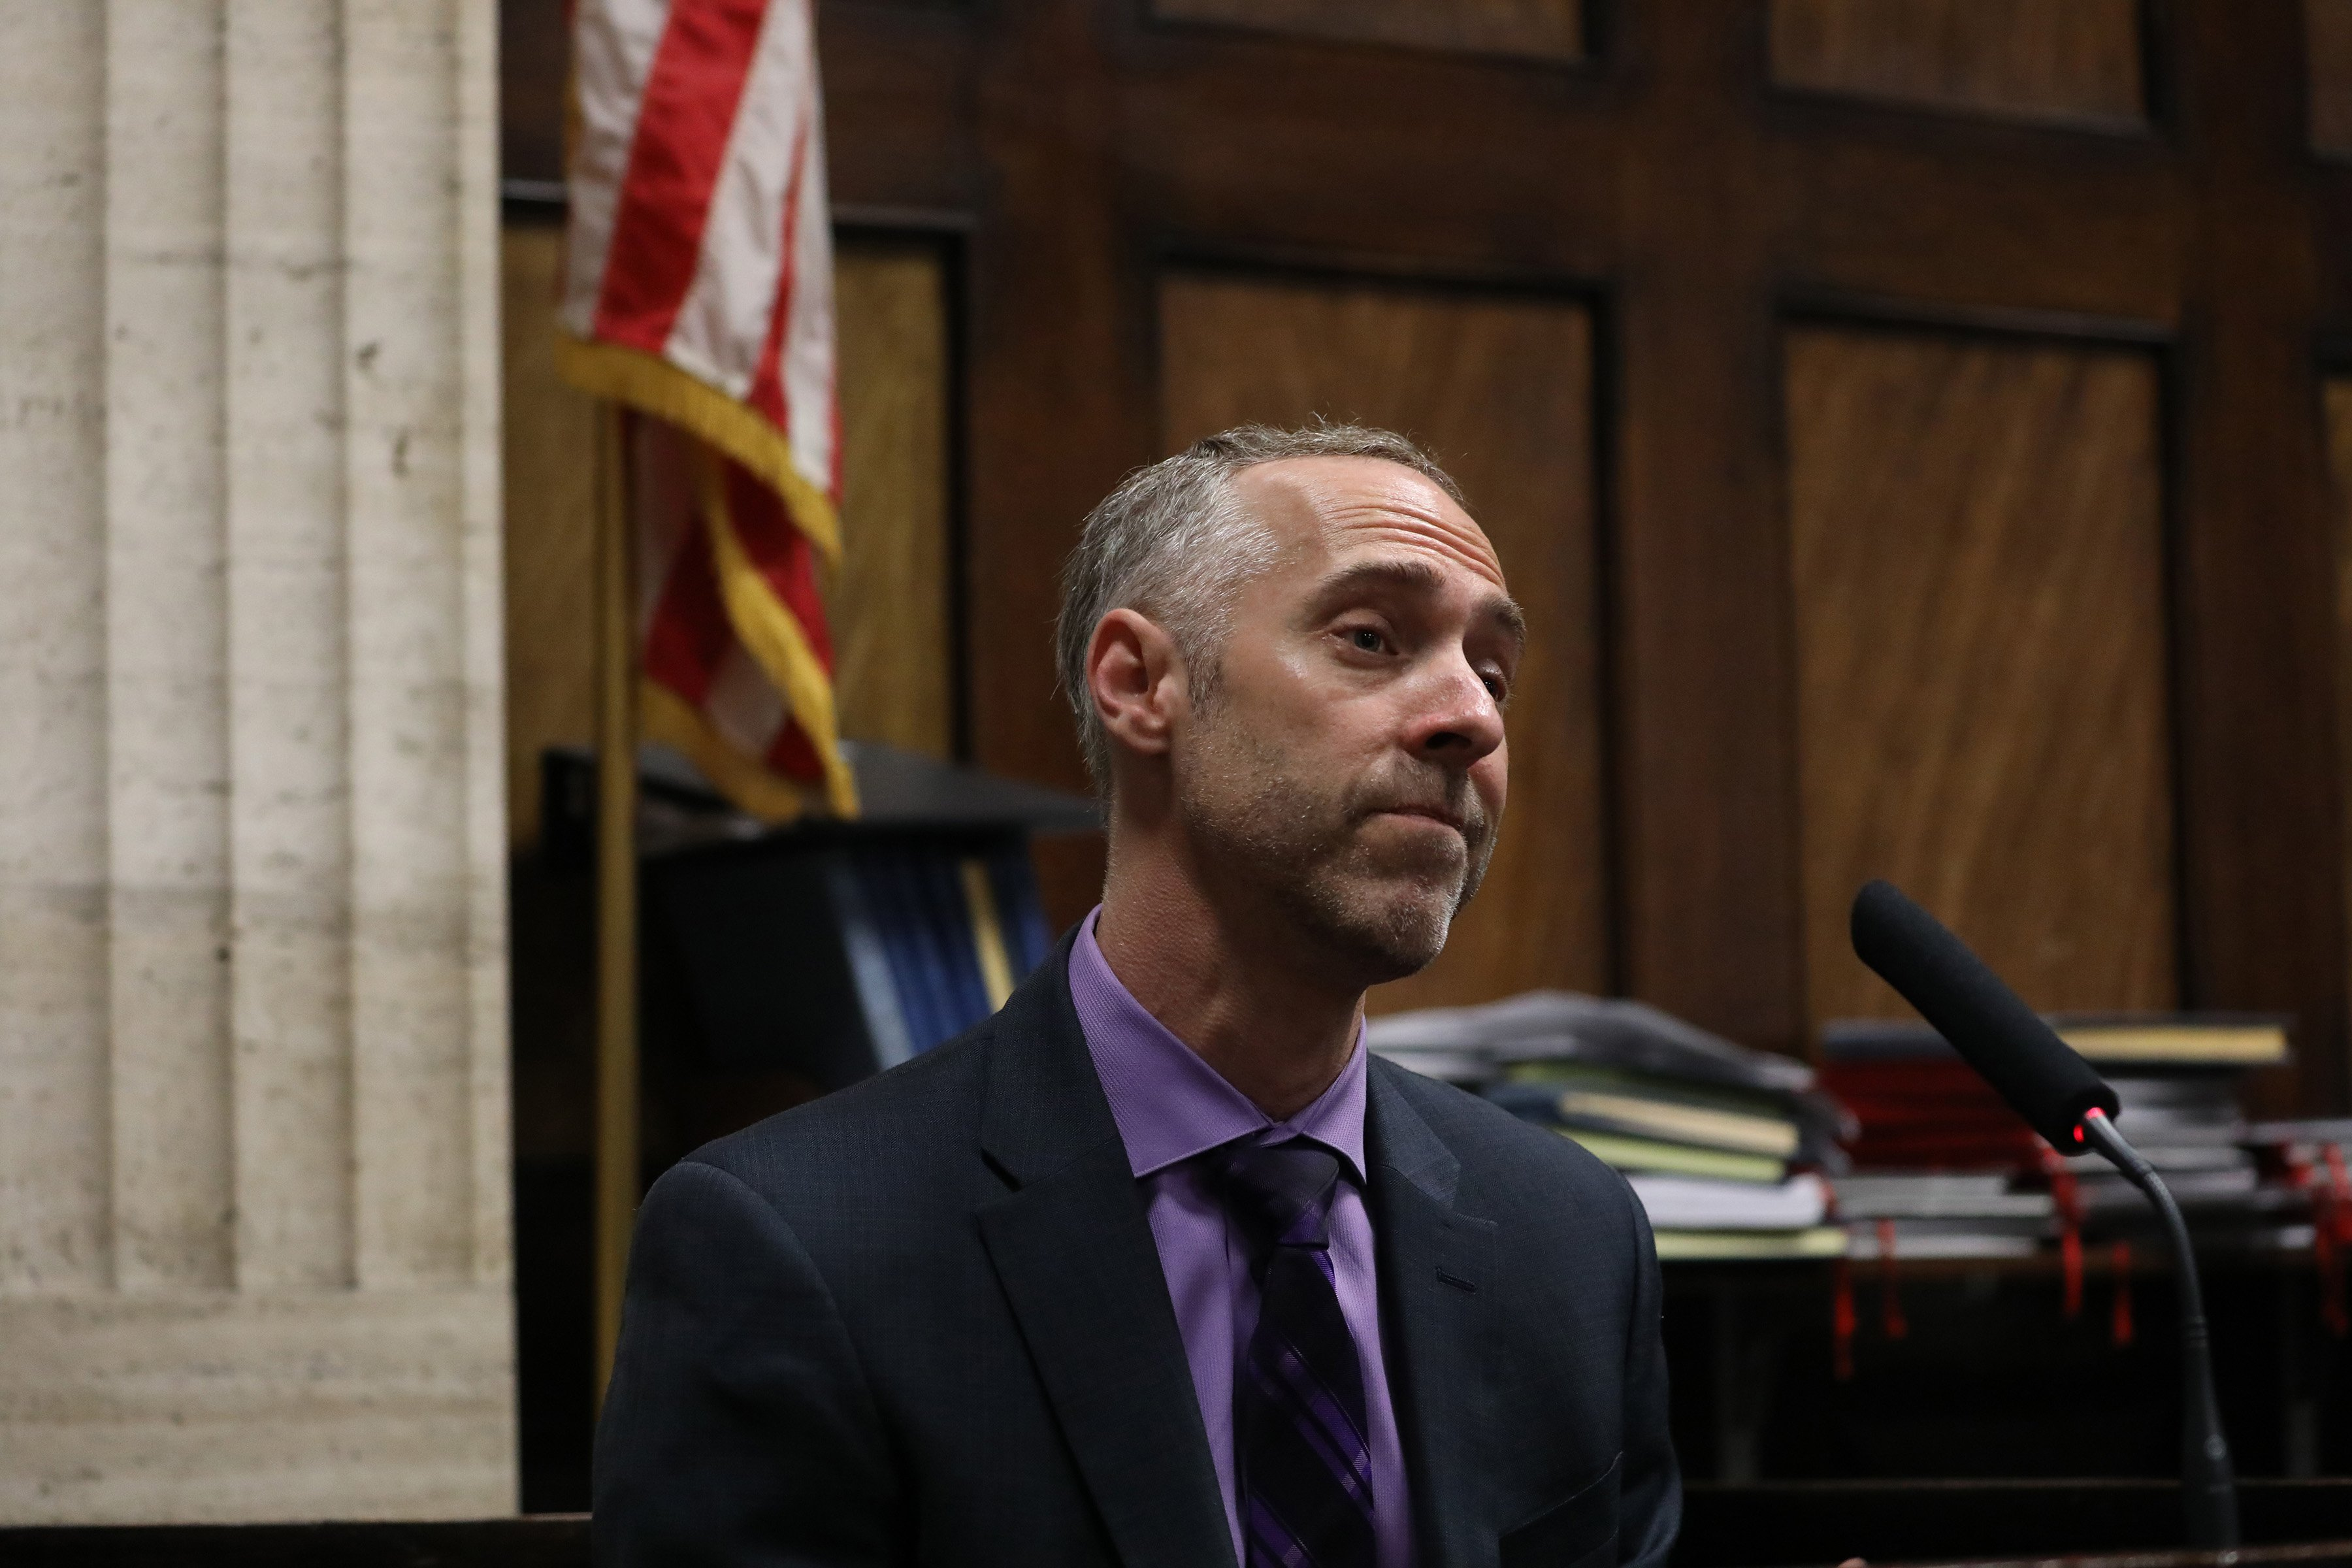 Witness Bryan Edelman, a trial consultant hired by the defense to conduct change-of-venue polls, answers questions at the hearing in the Jason Van Dyke case at Leighton Criminal Court in Chicago Wednesday April 18, 2018.    (Nancy Stone / Chicago Tribune / Pool)